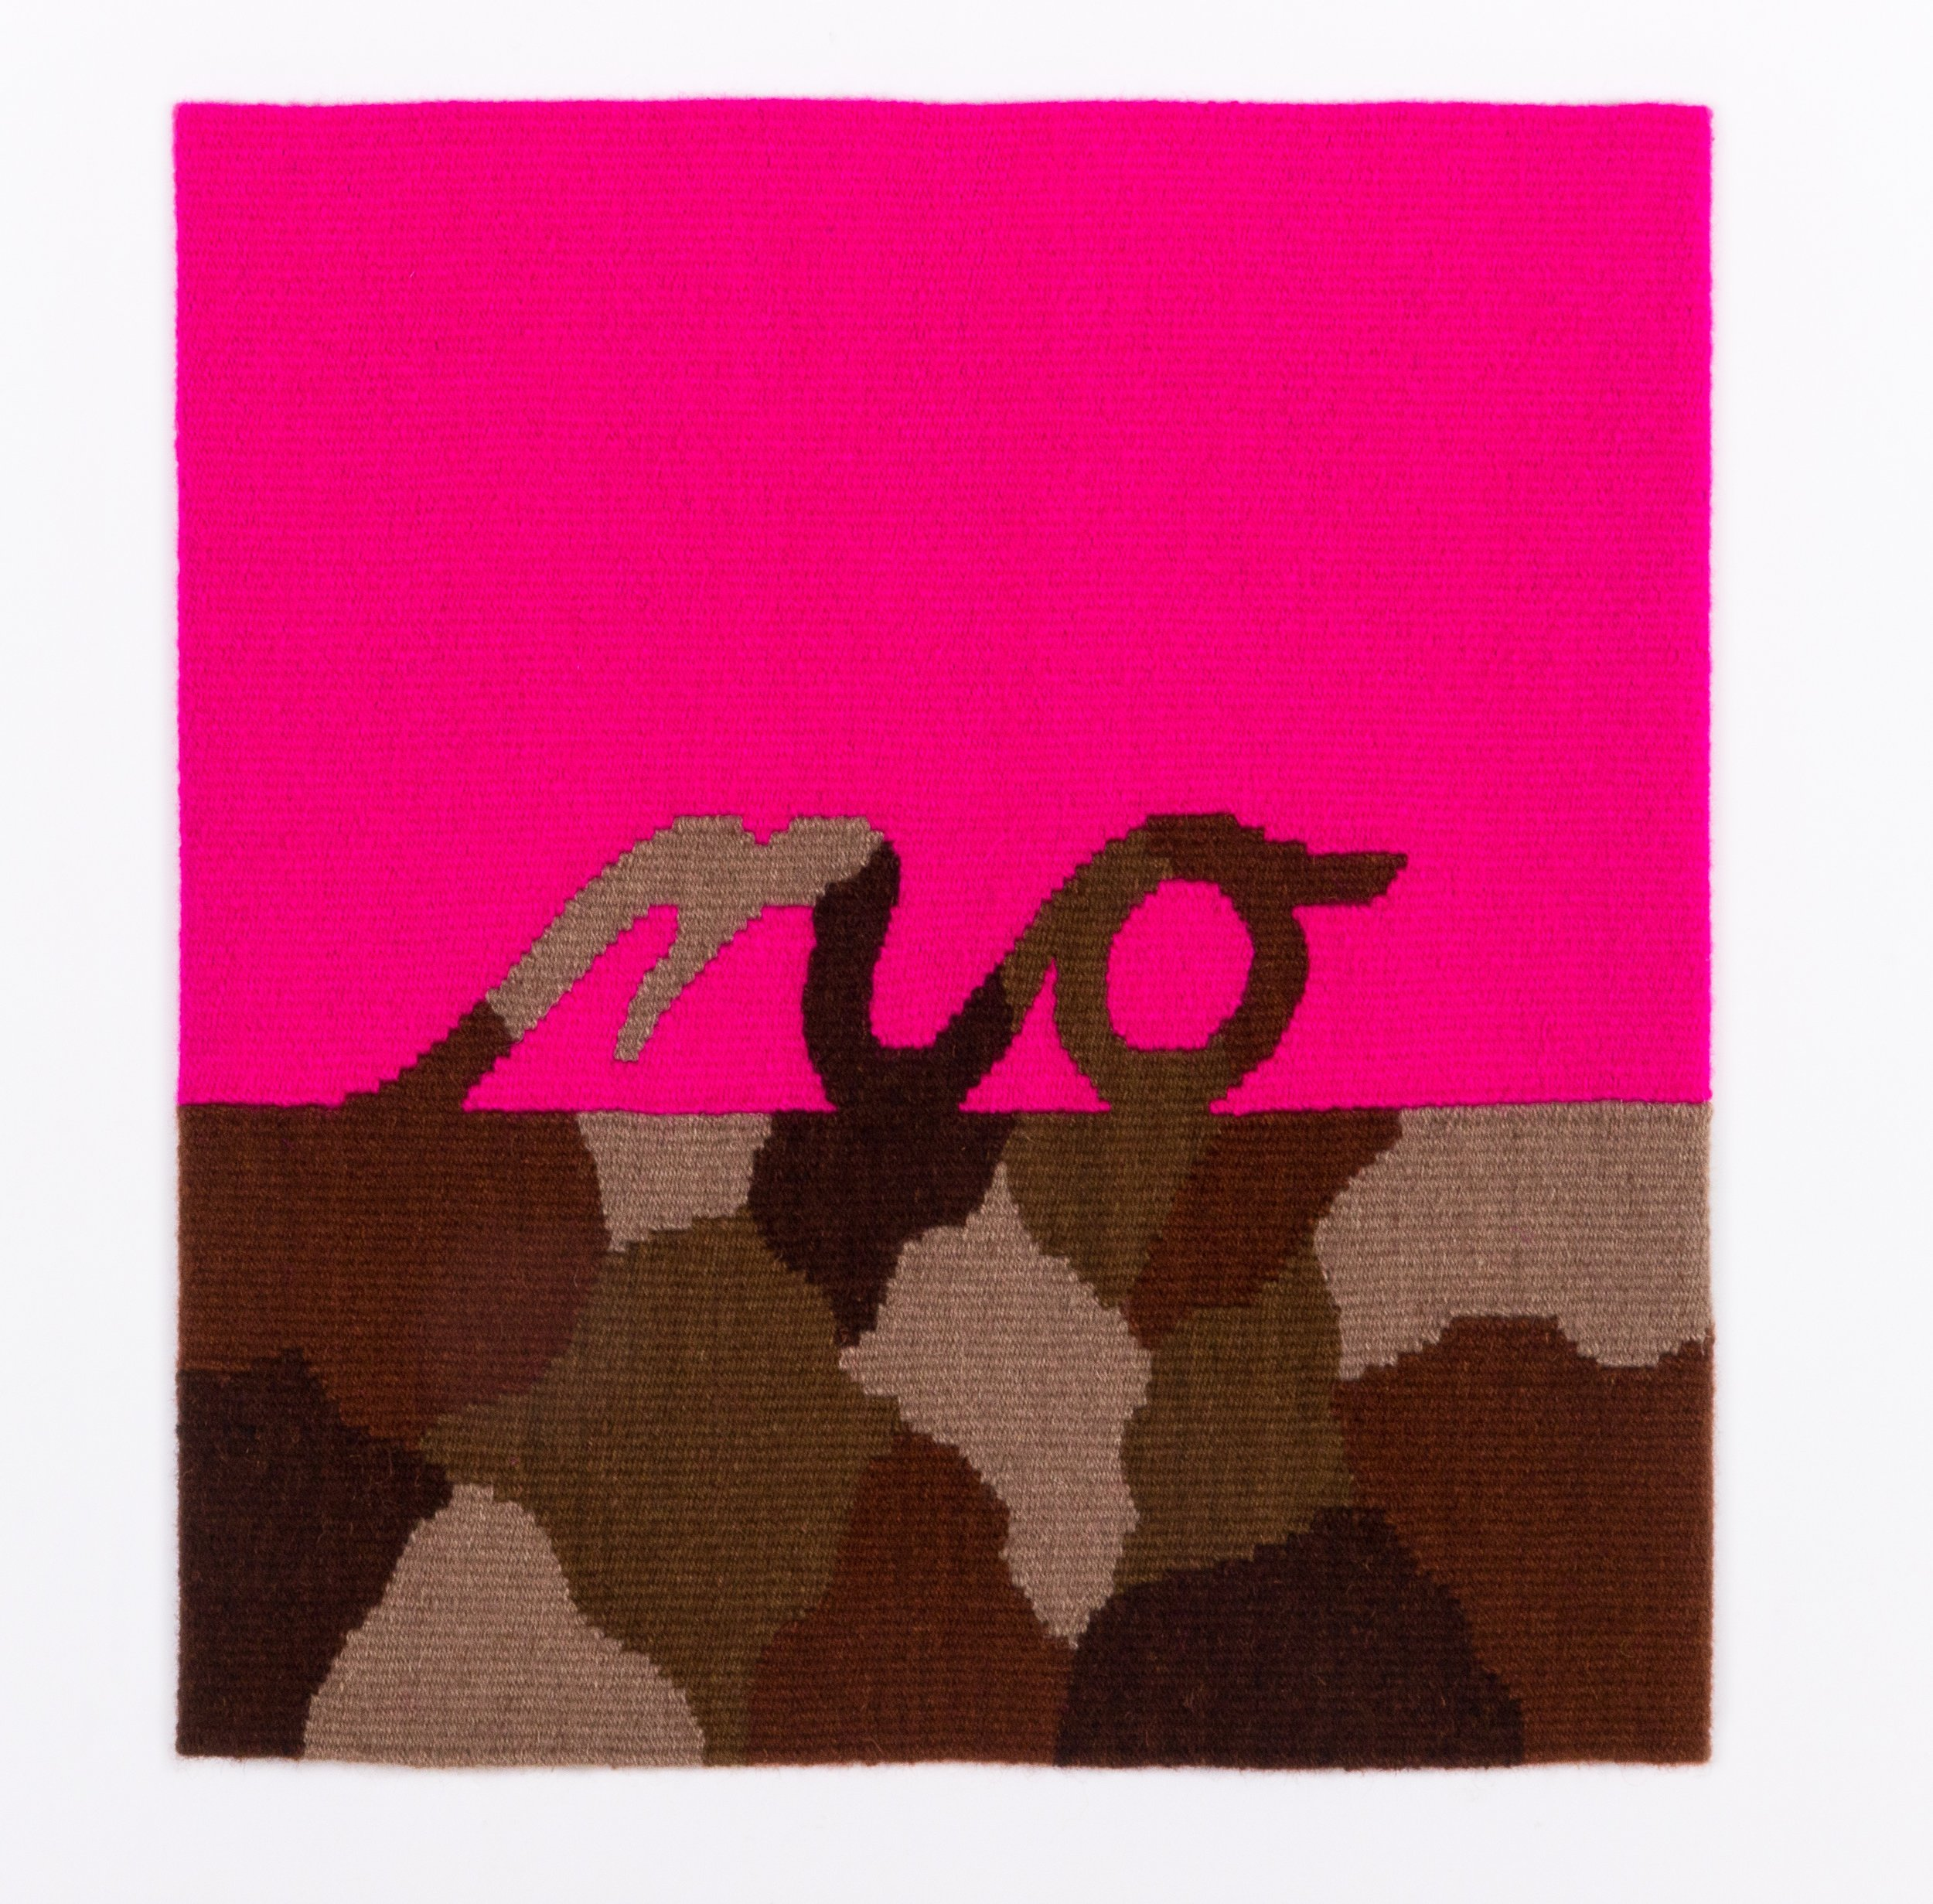 Iverson_The Color of No - Brown Camouflage with Pink.jpg